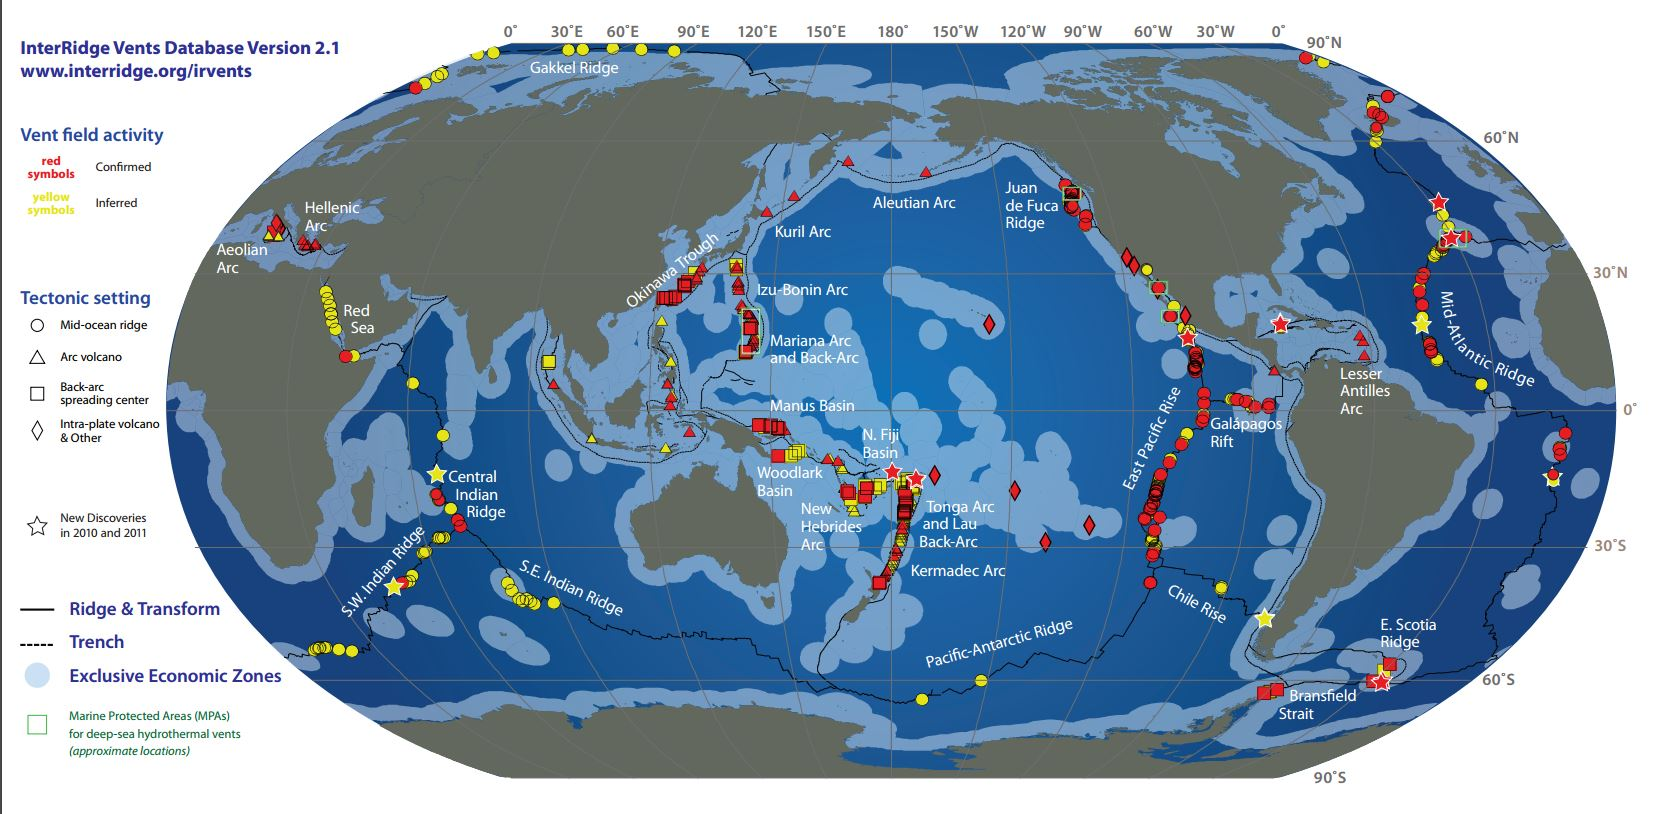 Distributions of hydrothermal vents around the globe. (Courtesy of WHOI)